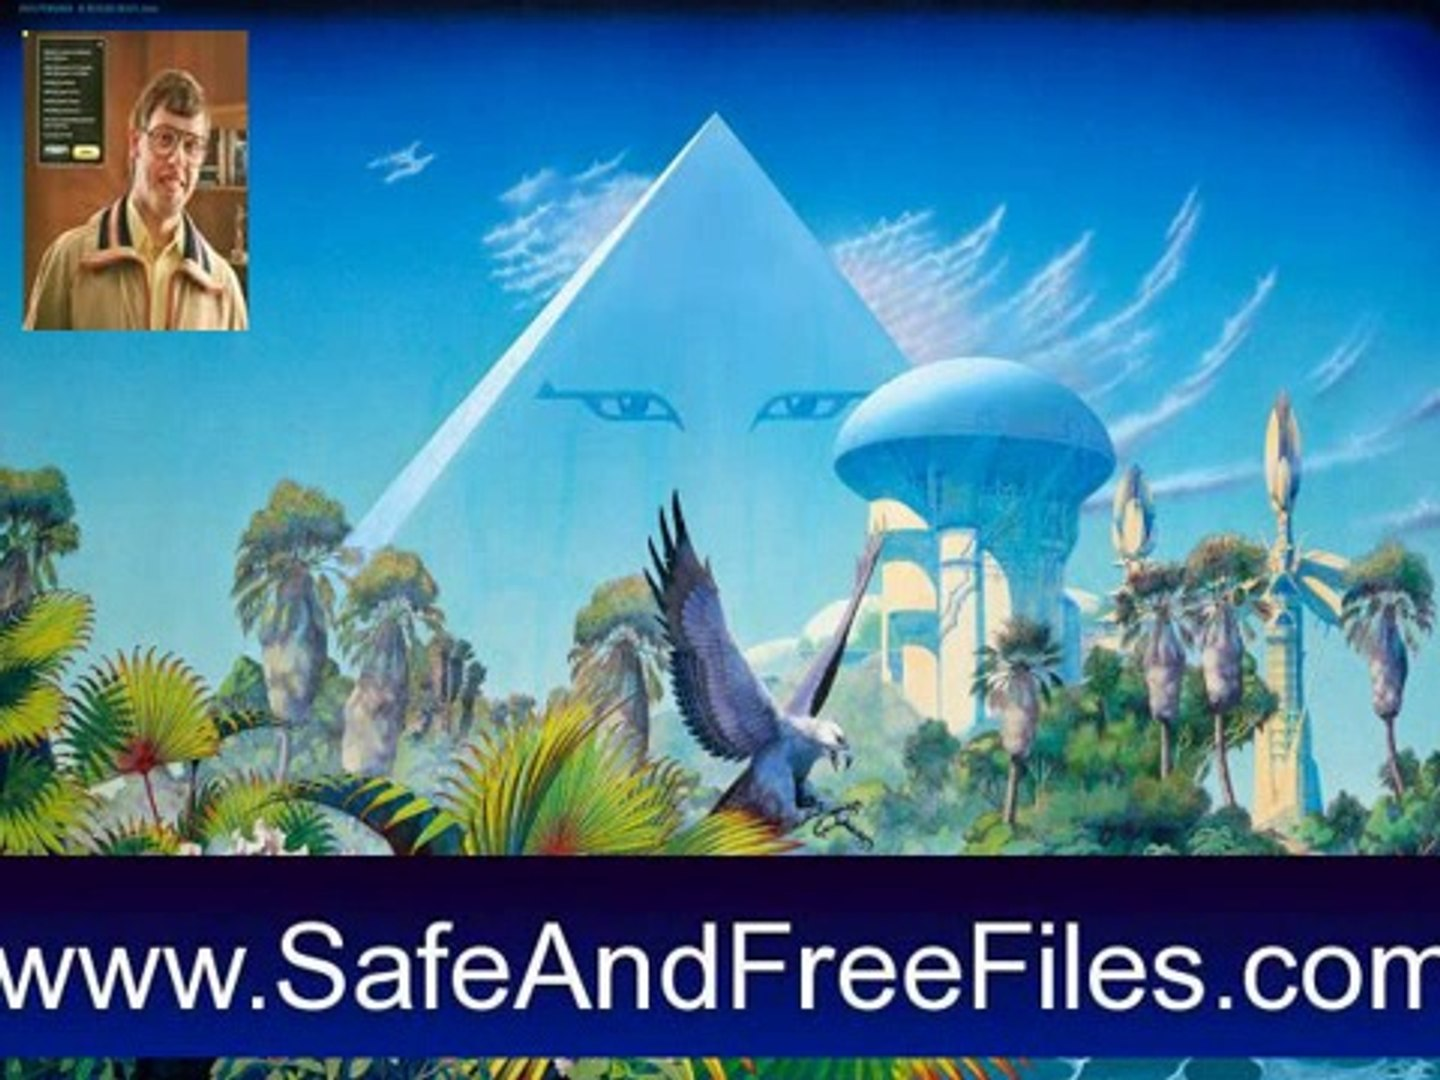 Download Surreal Wallpapers Pack 1 Activation Code Generator Free